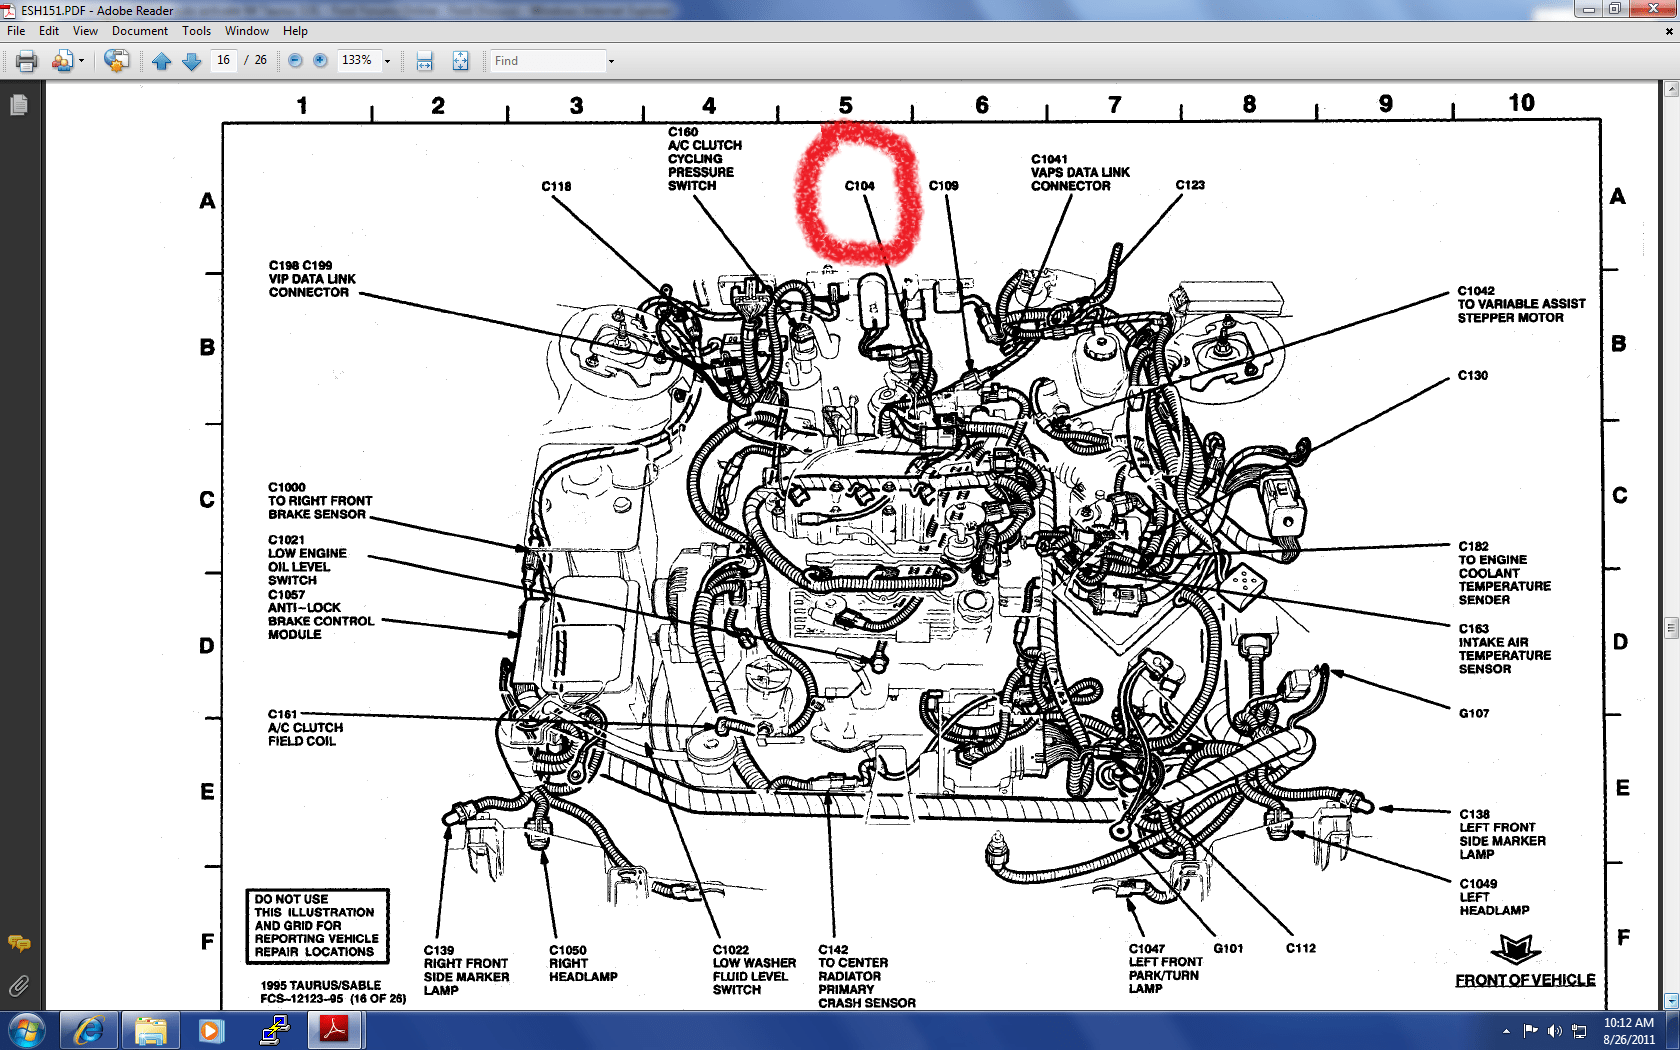 hight resolution of 2000 ford contour radiator diagram simple wiring diagram schema 1999 ford 5 4l engine diagram 1995 ford contour engine diagram